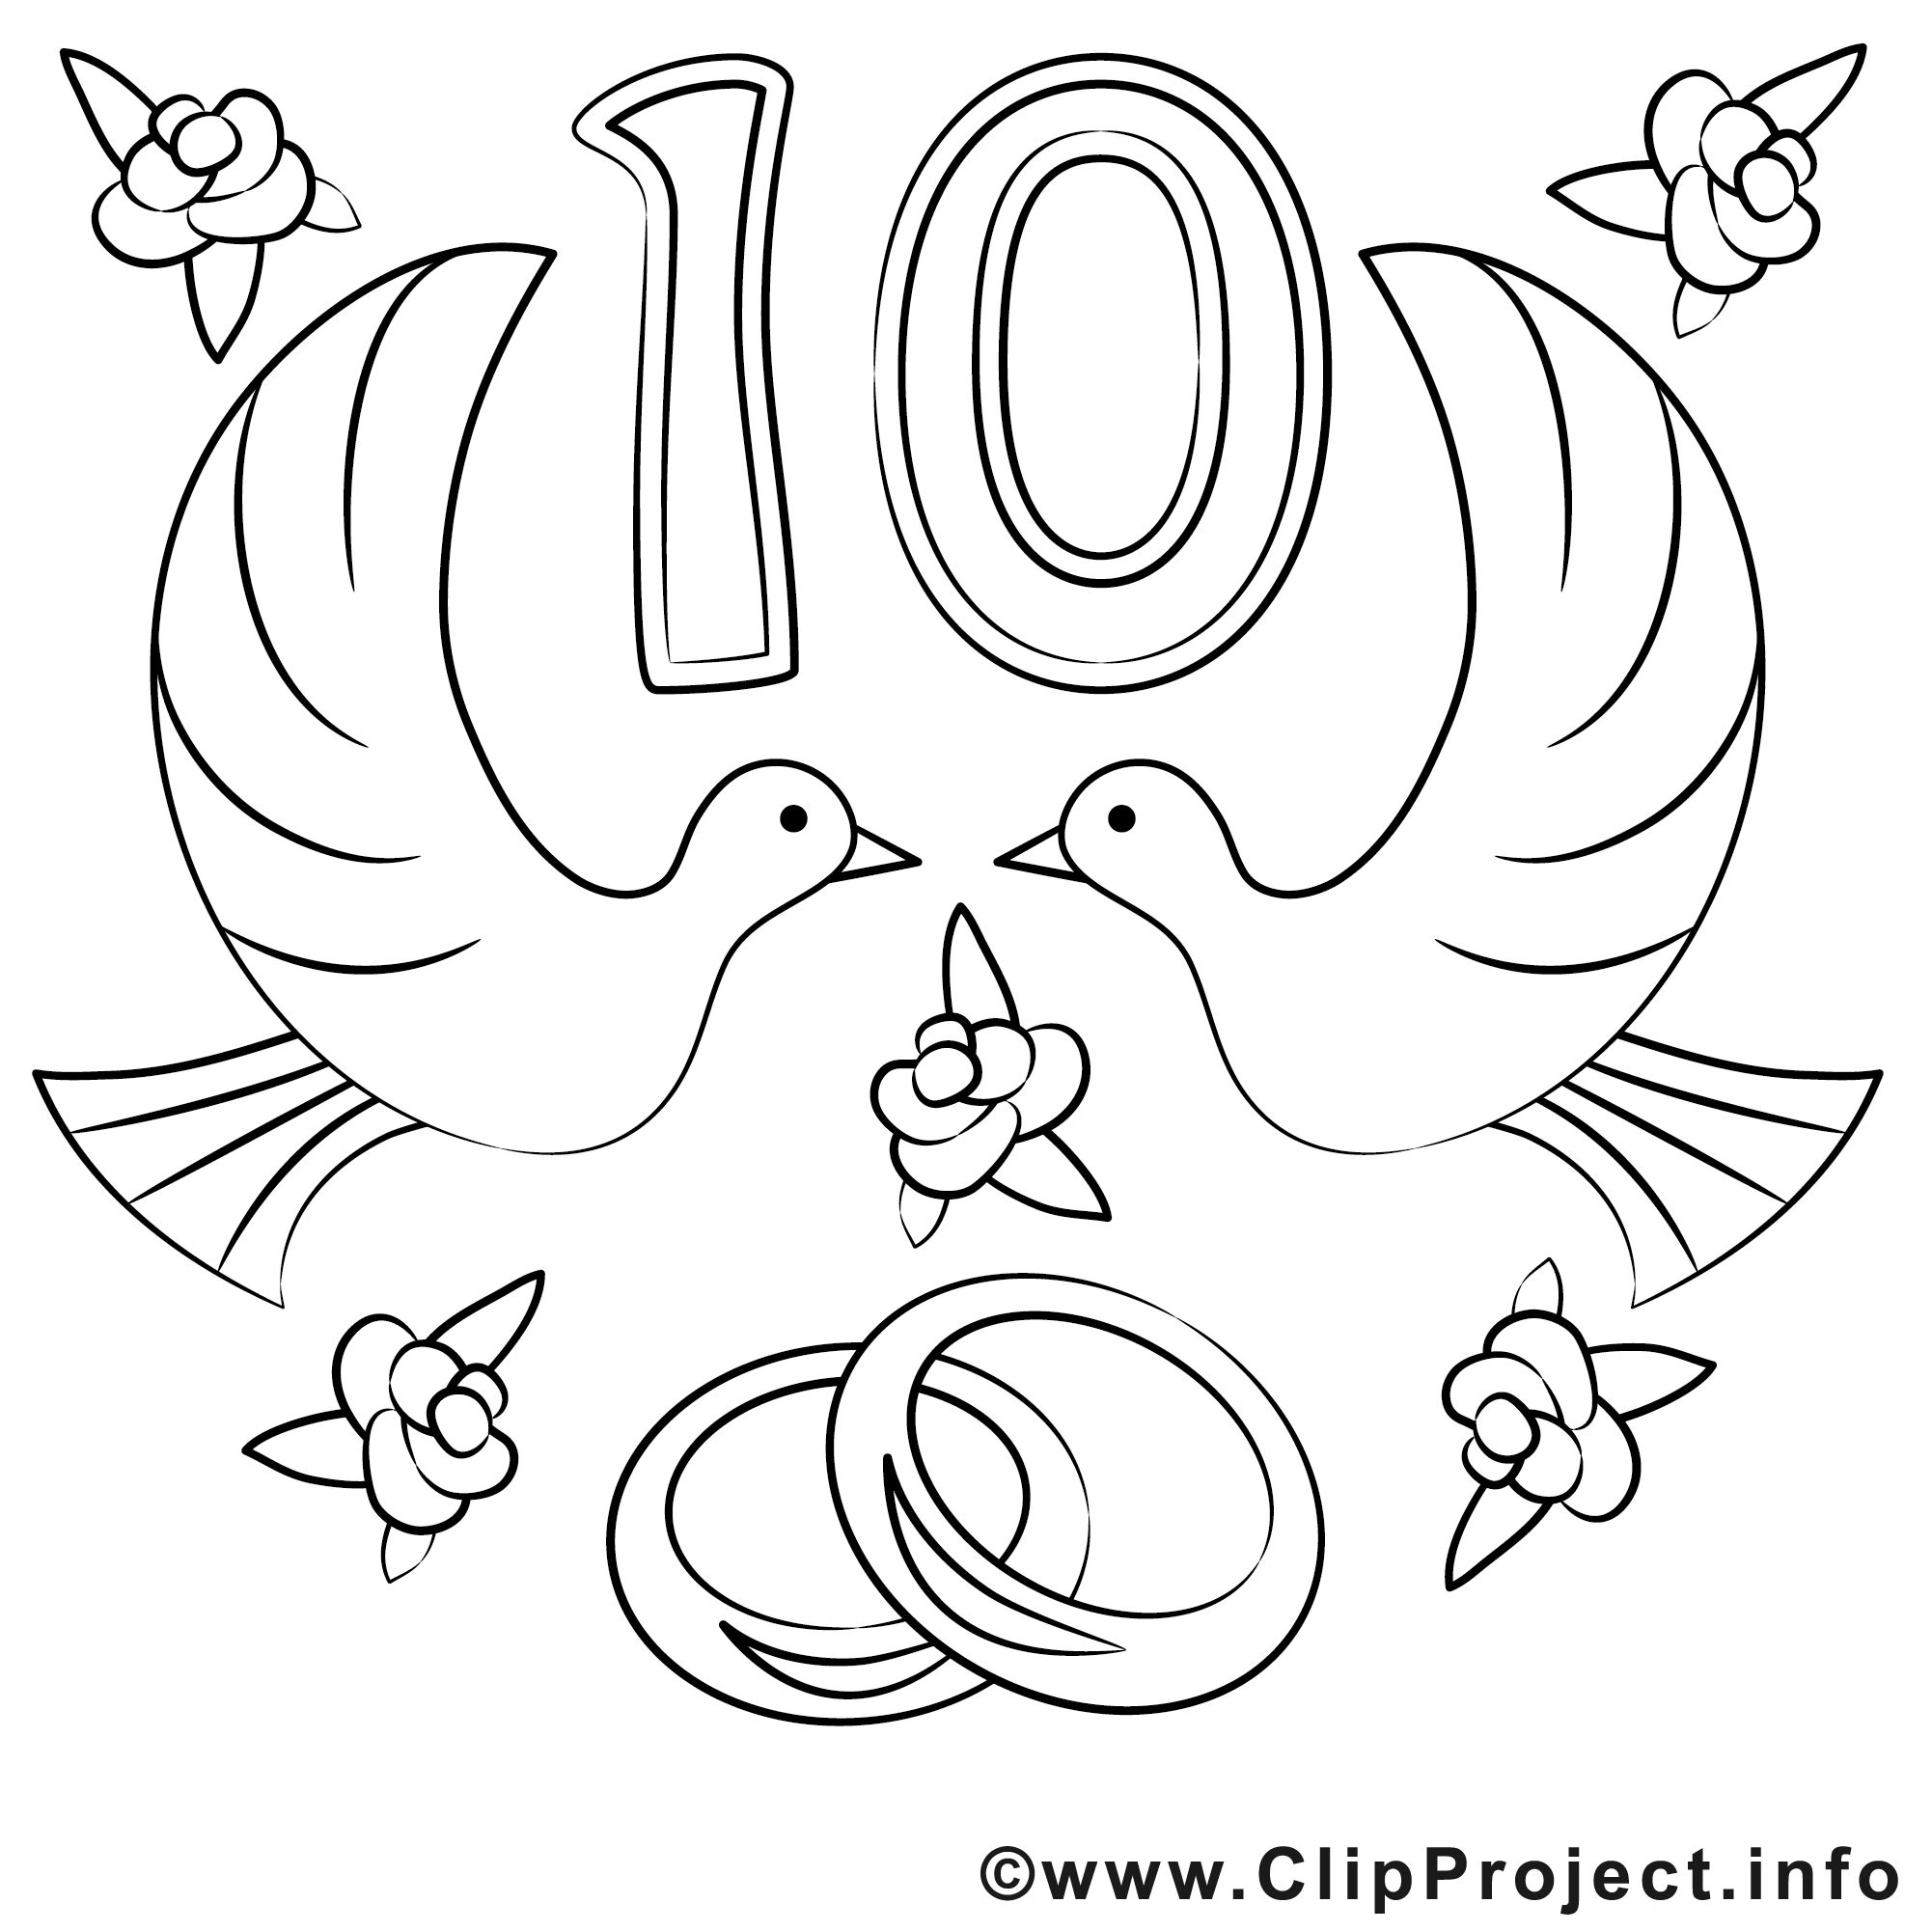 10 ans image - Coloriage mariage illustration - Mariage ...